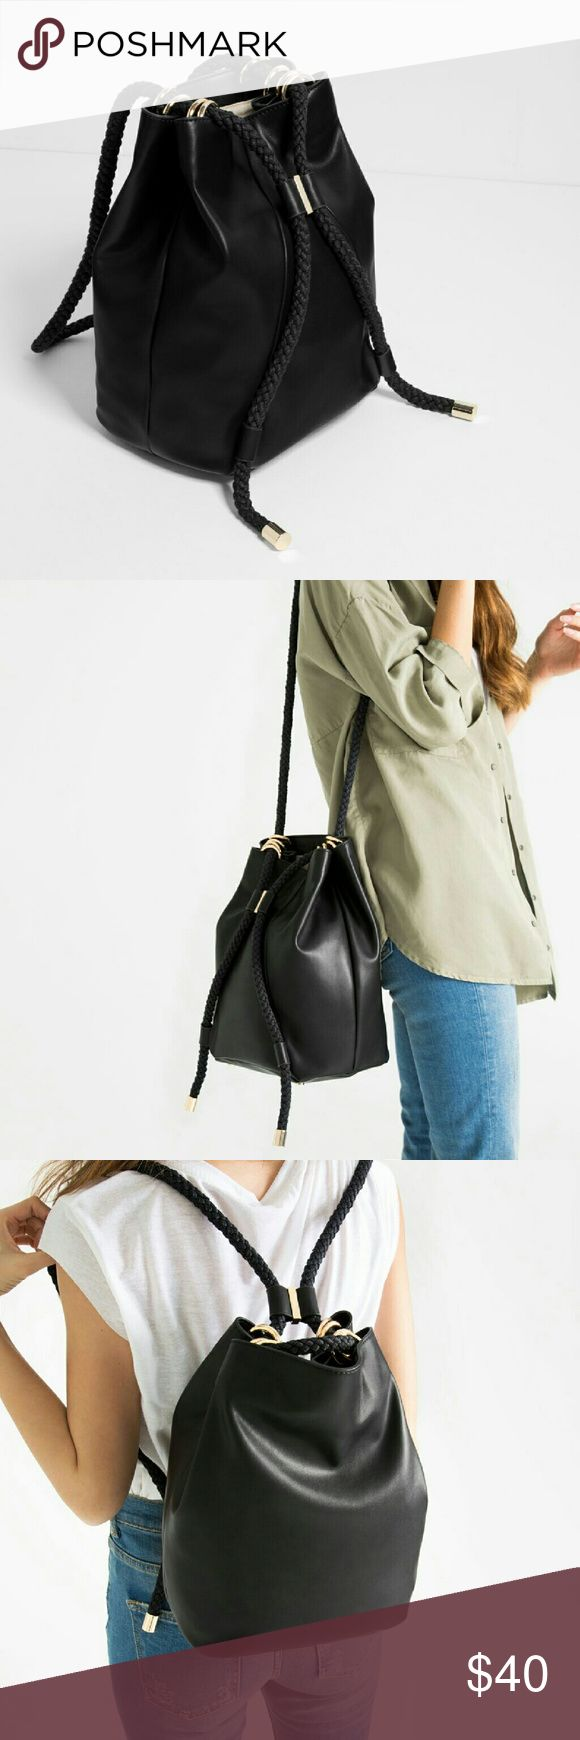 ZARA DRAWSTRING CONVERTIBLE BUCKET BAG black brand new with tags  bucket bag that can be worn as backpack sold out online and in stores   Height x Width x Depth (32 x 24 x 18 cm) Zara Bags Backpacks